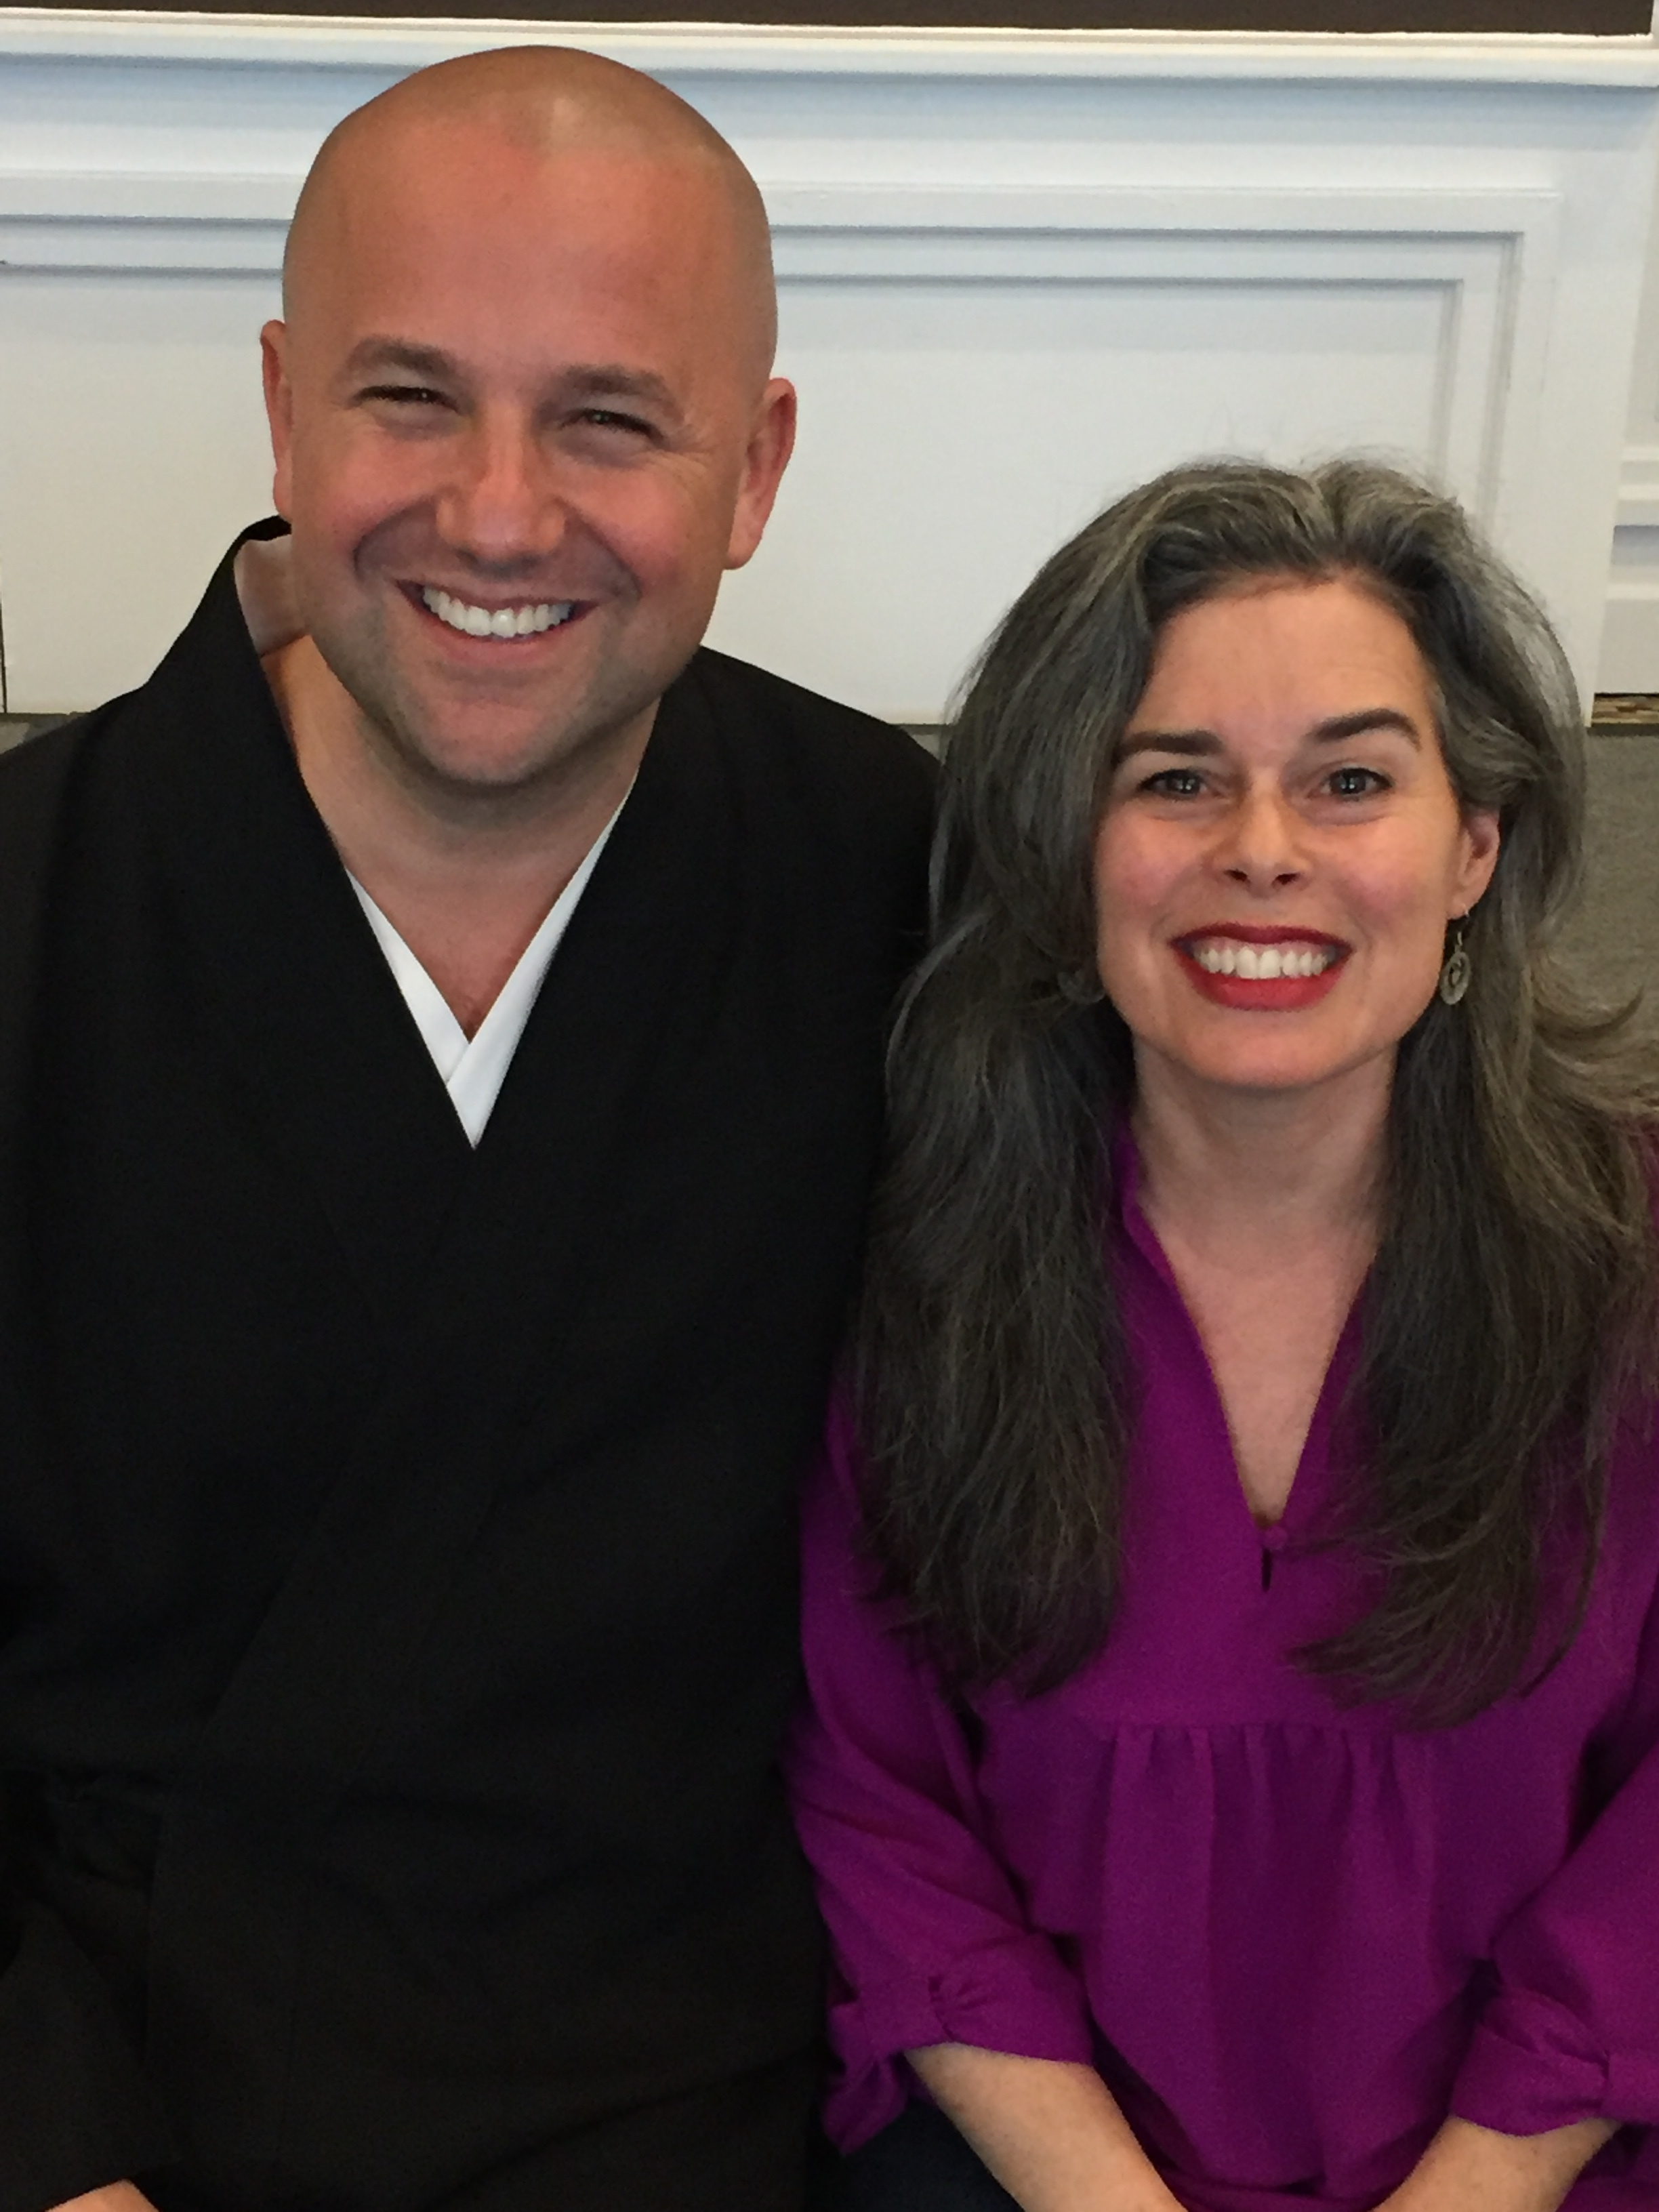 WITH  SENSEI KOSHIN PALEY ELLISON, MFA, LMSW, DMIN,  CO-FOUNDER OF THE NEW YORK ZEN CENTER FOR CONTEMPLATIVE CARE